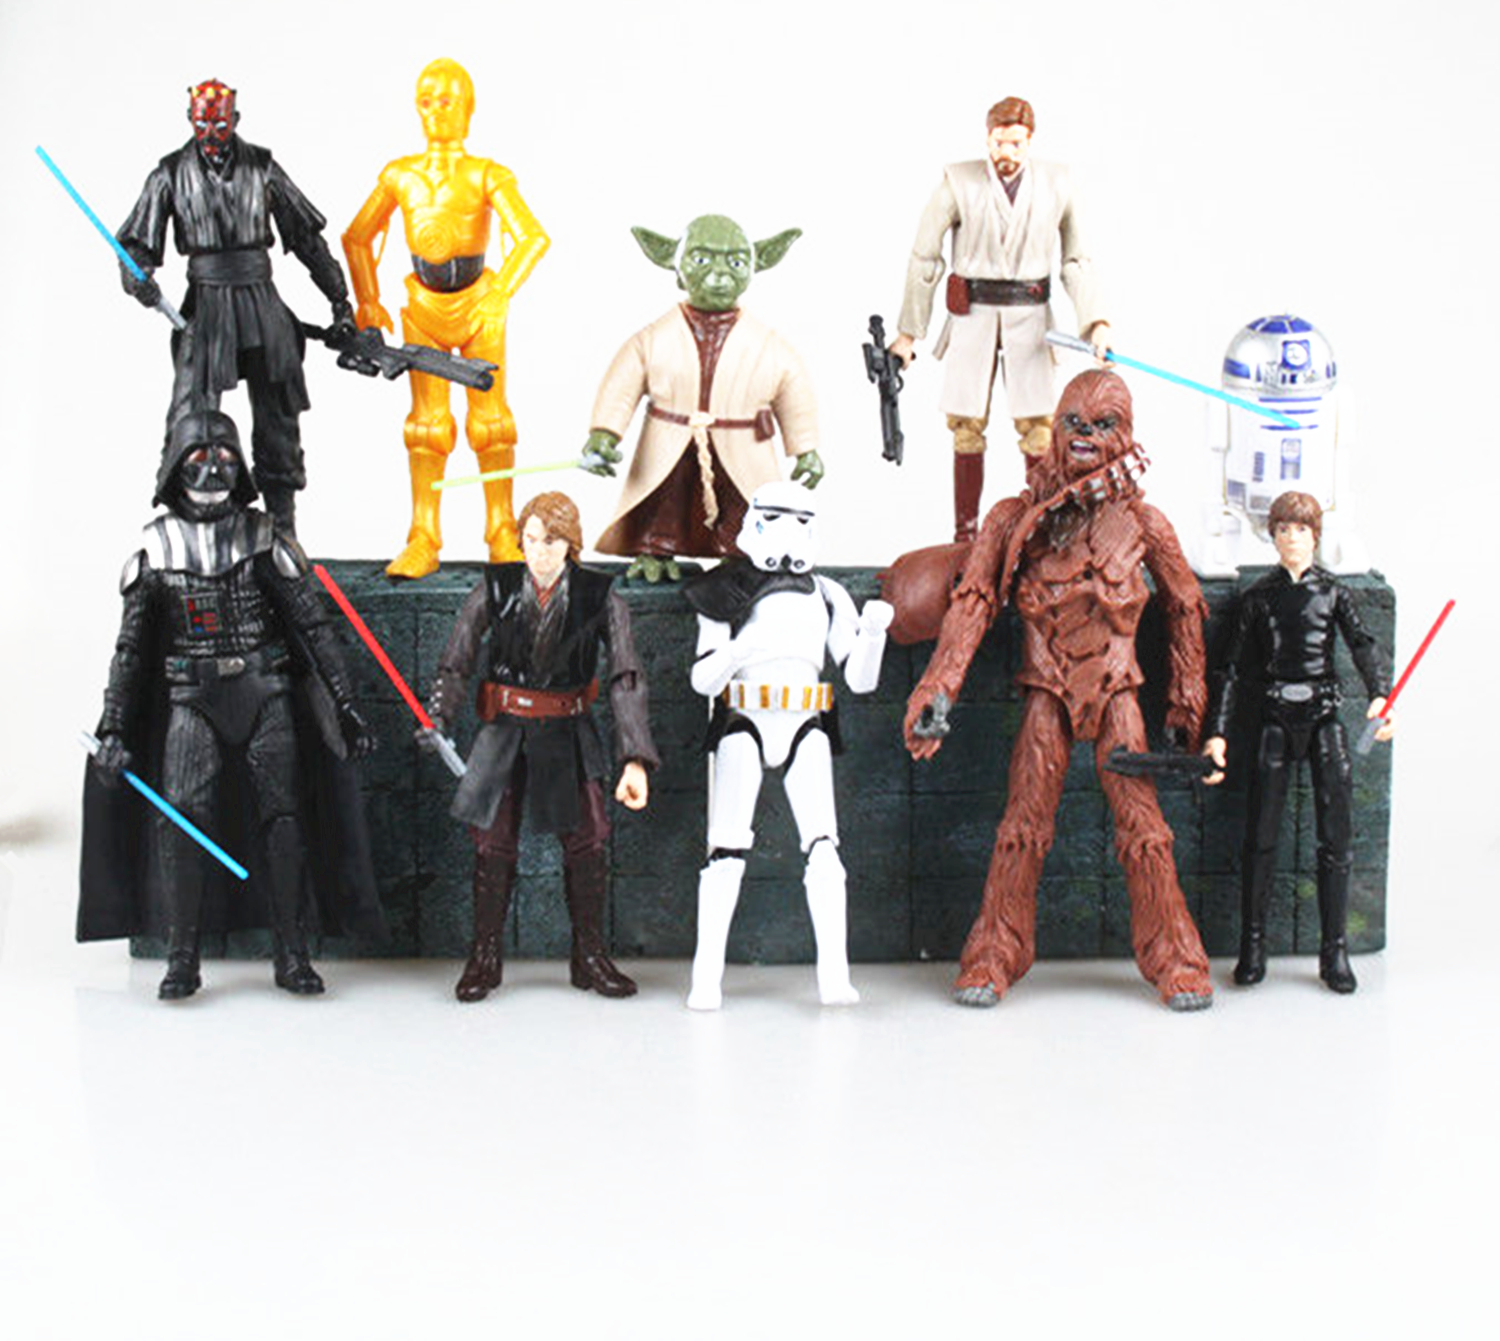 10PCS Action Figures Toys Kids Gifts Toy Pvc Collections For Star Wars Darth Maul Vader Yoda Skywalker Stormtrooper free shipping chocolate cake hello kitty action figures toys lovely anima kitty figurine doll plastic pvc toy gifts for kids